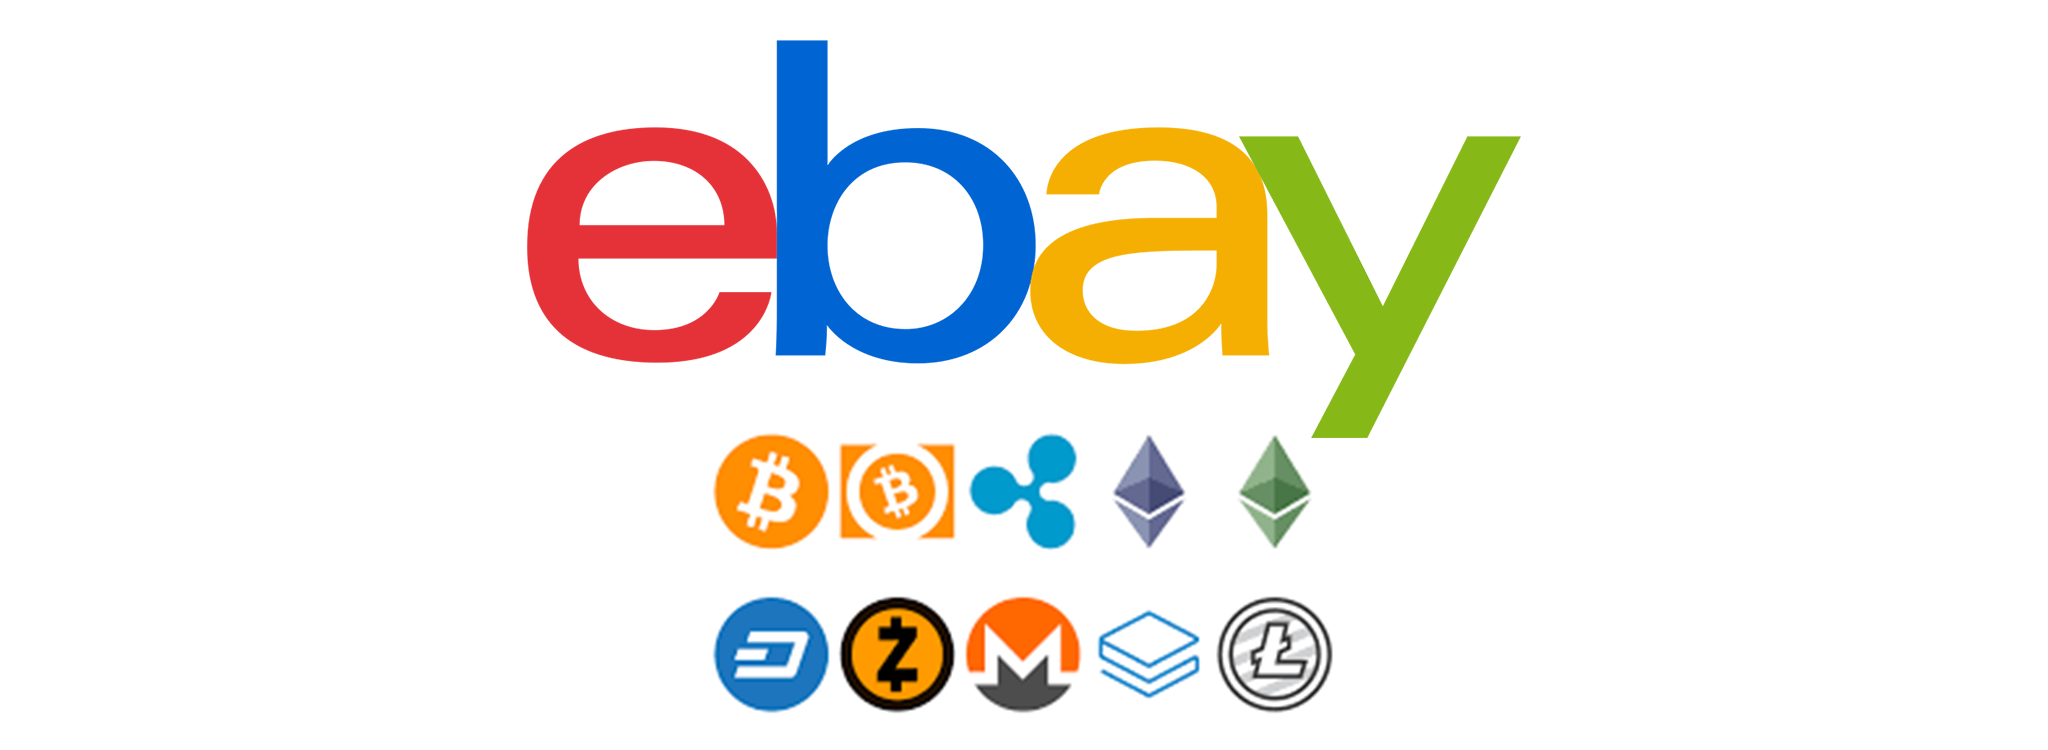 Buying Items On eBay Using Bitcoin and cryptocurrency